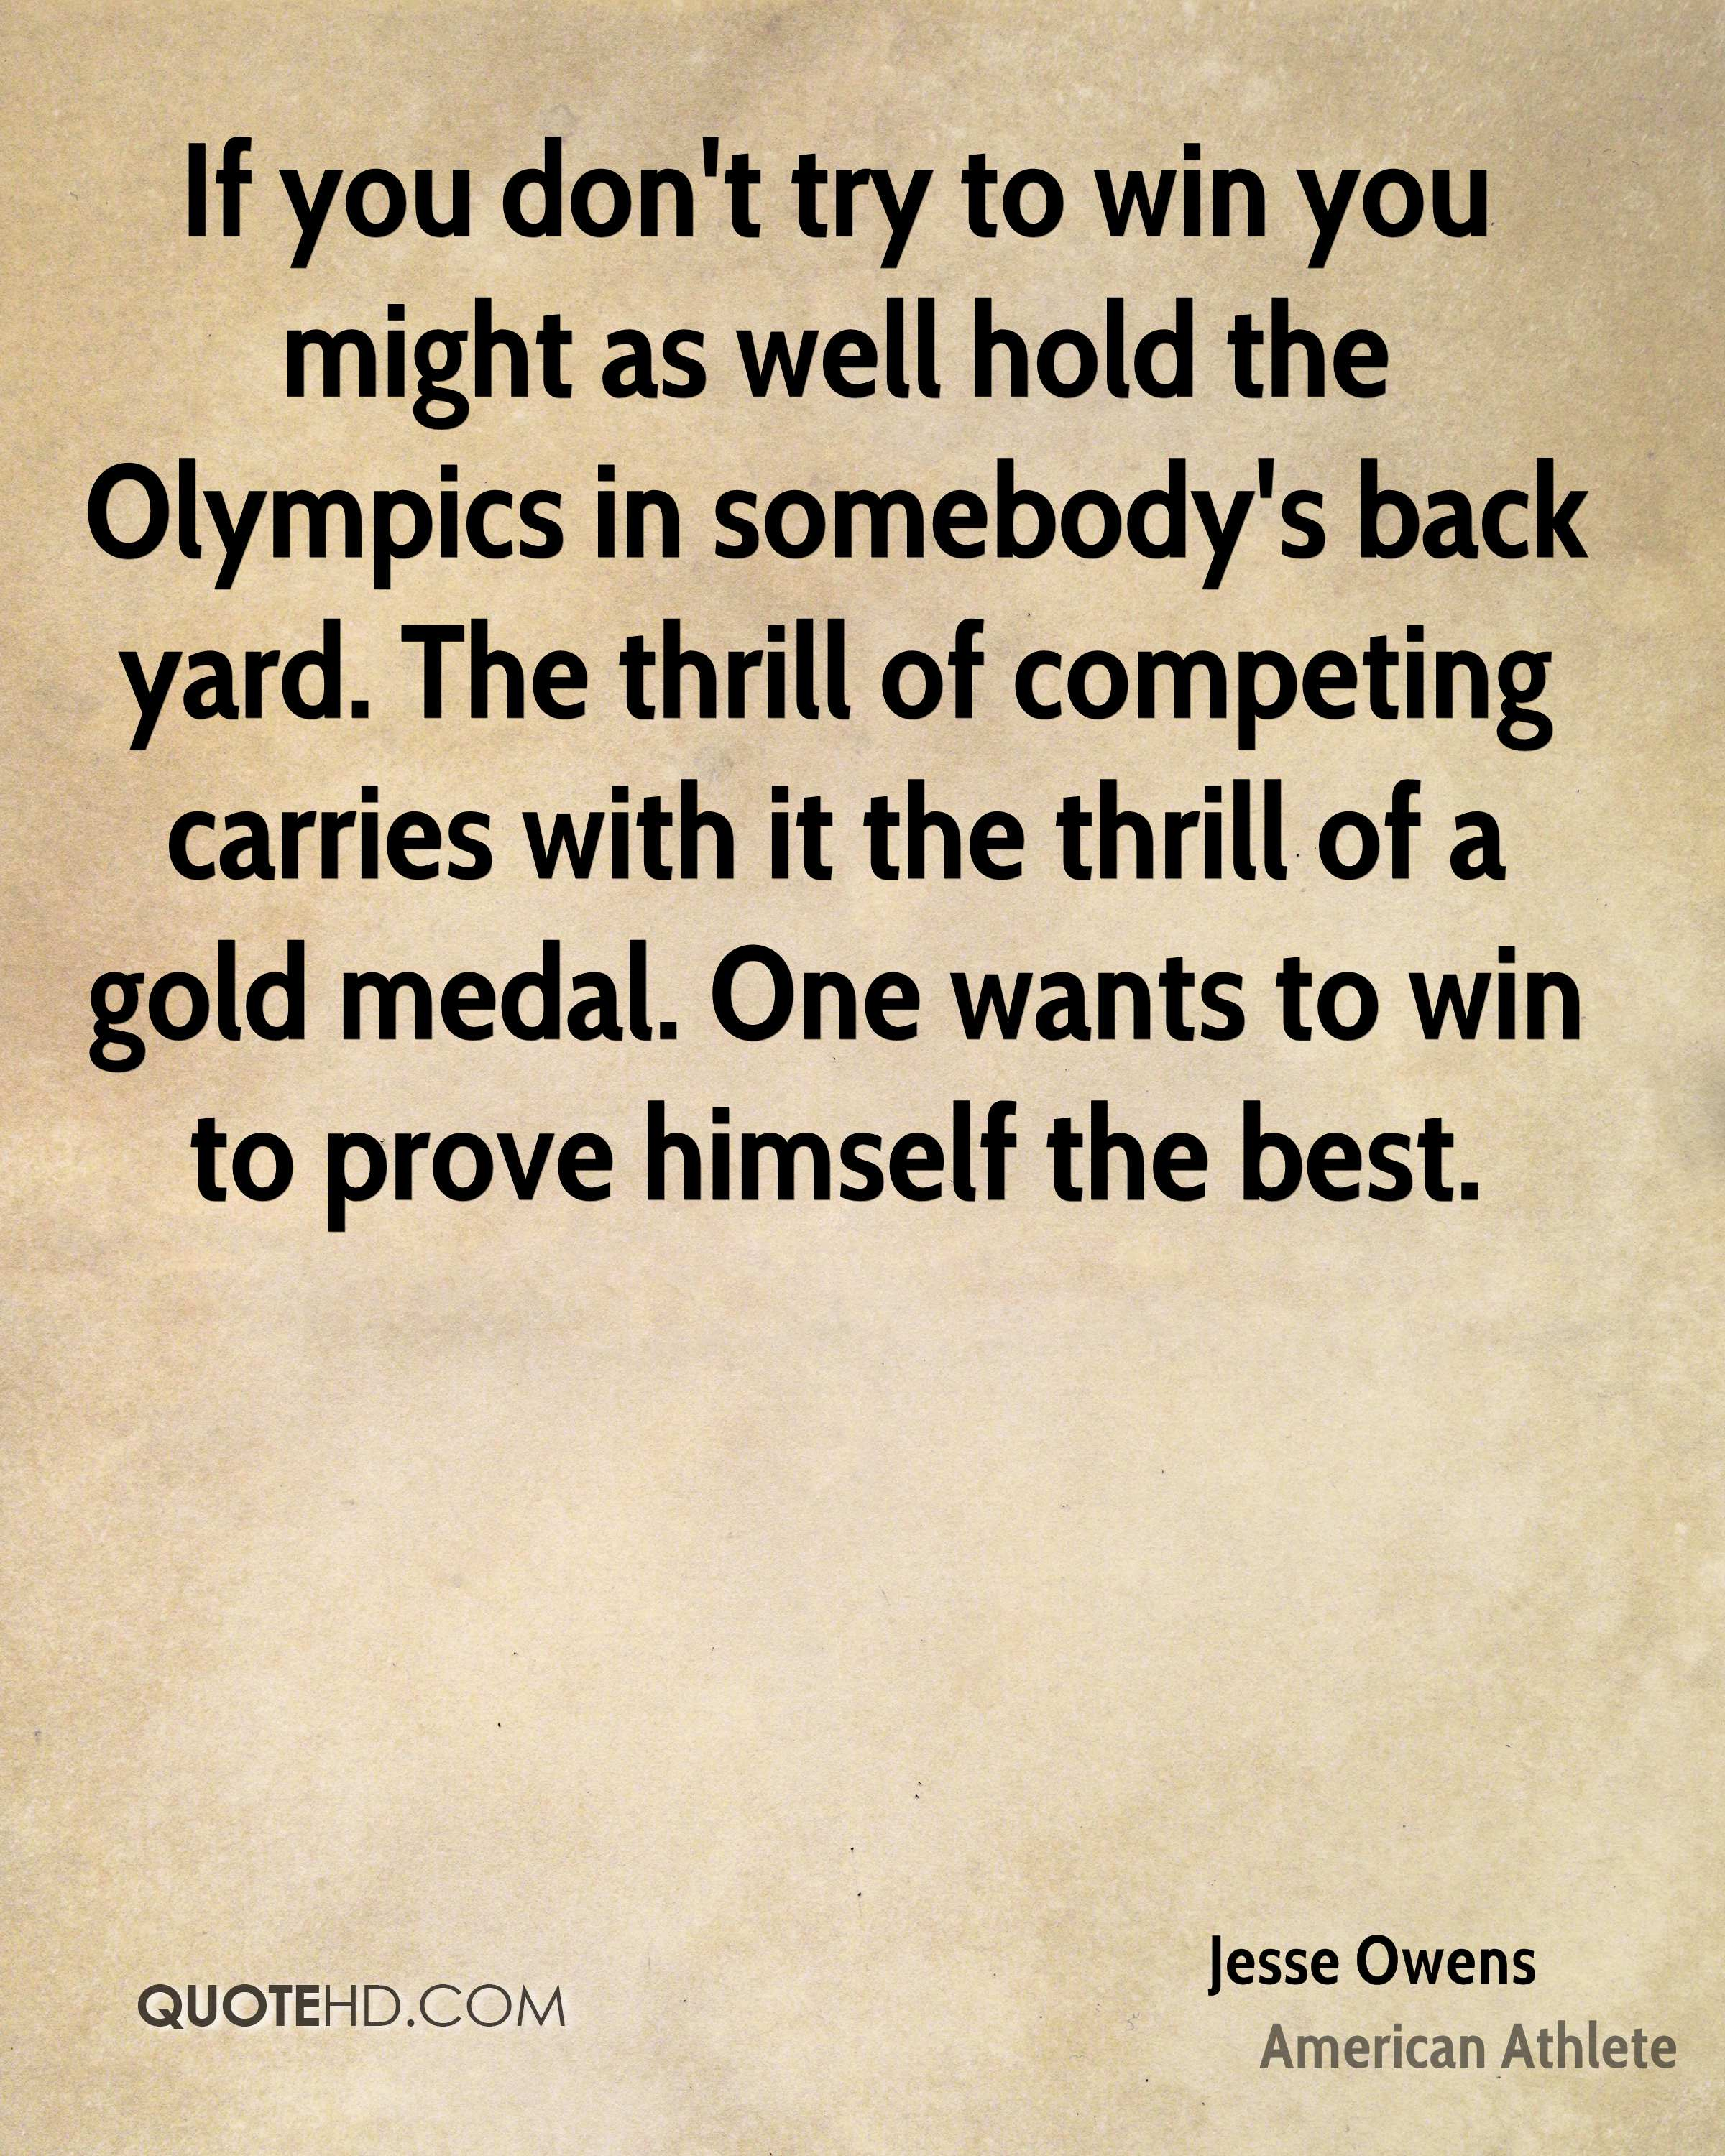 Win Back Love Quotes: Jesse Owens Quotes